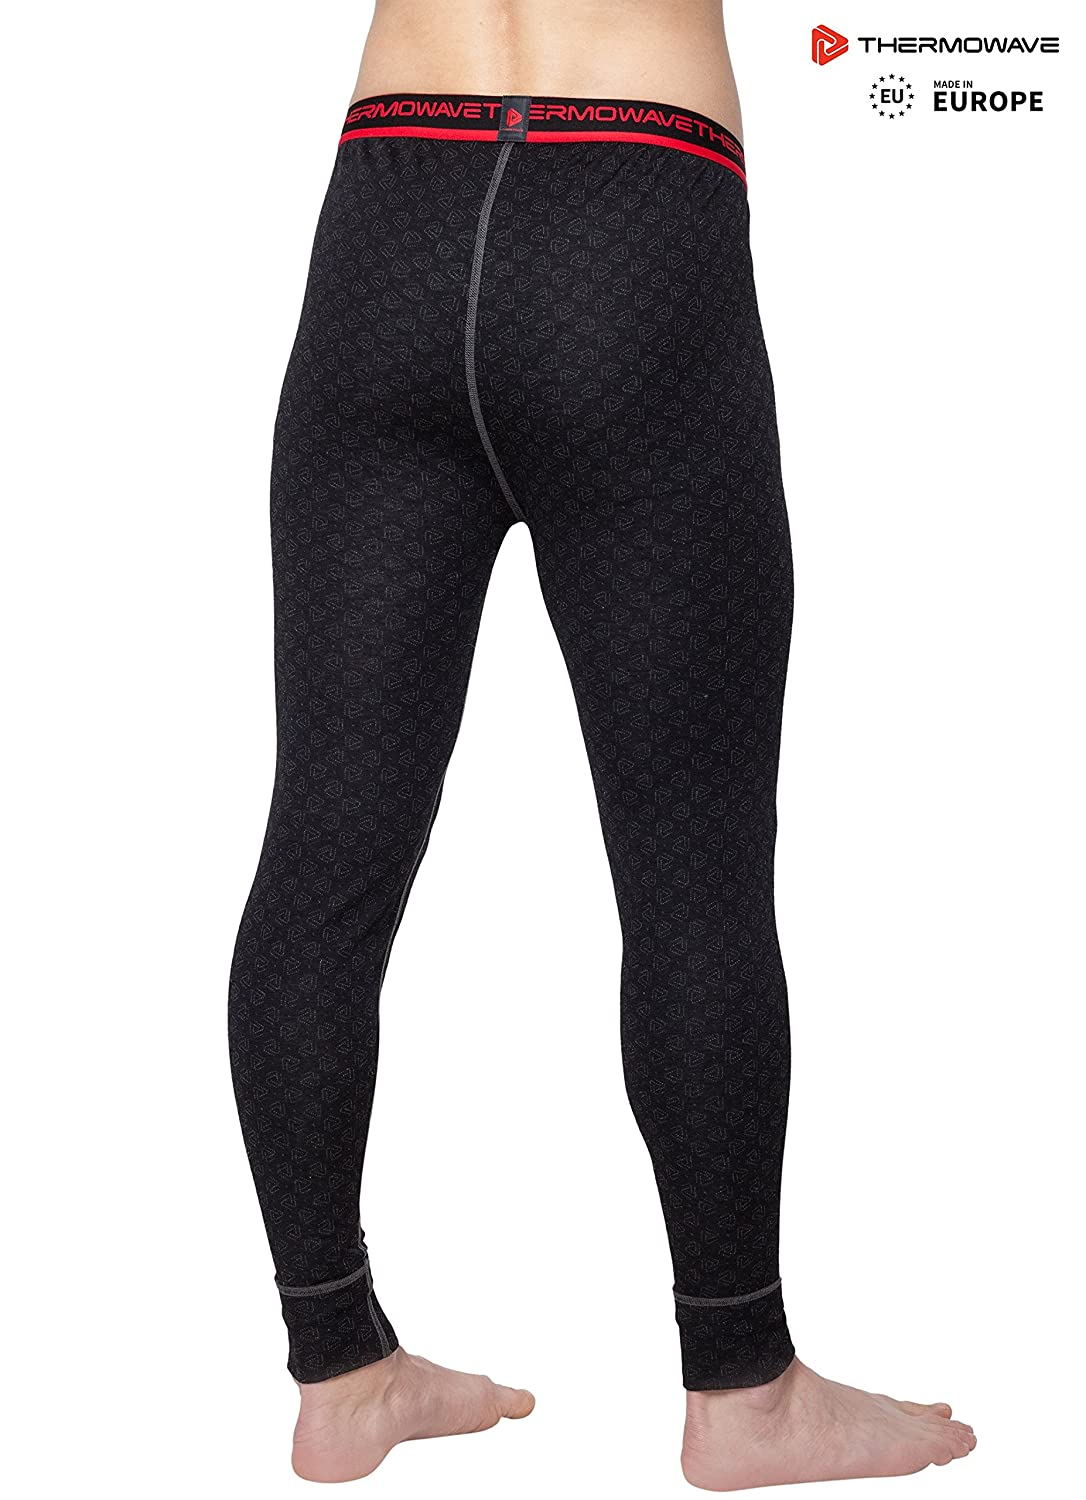 2246e31fd5f4 Amazon.com: Thermowave - Merino Xtreme/Mens Merino Wool 200 GSM Thermal  Underwear Pants: Sports & Outdoors